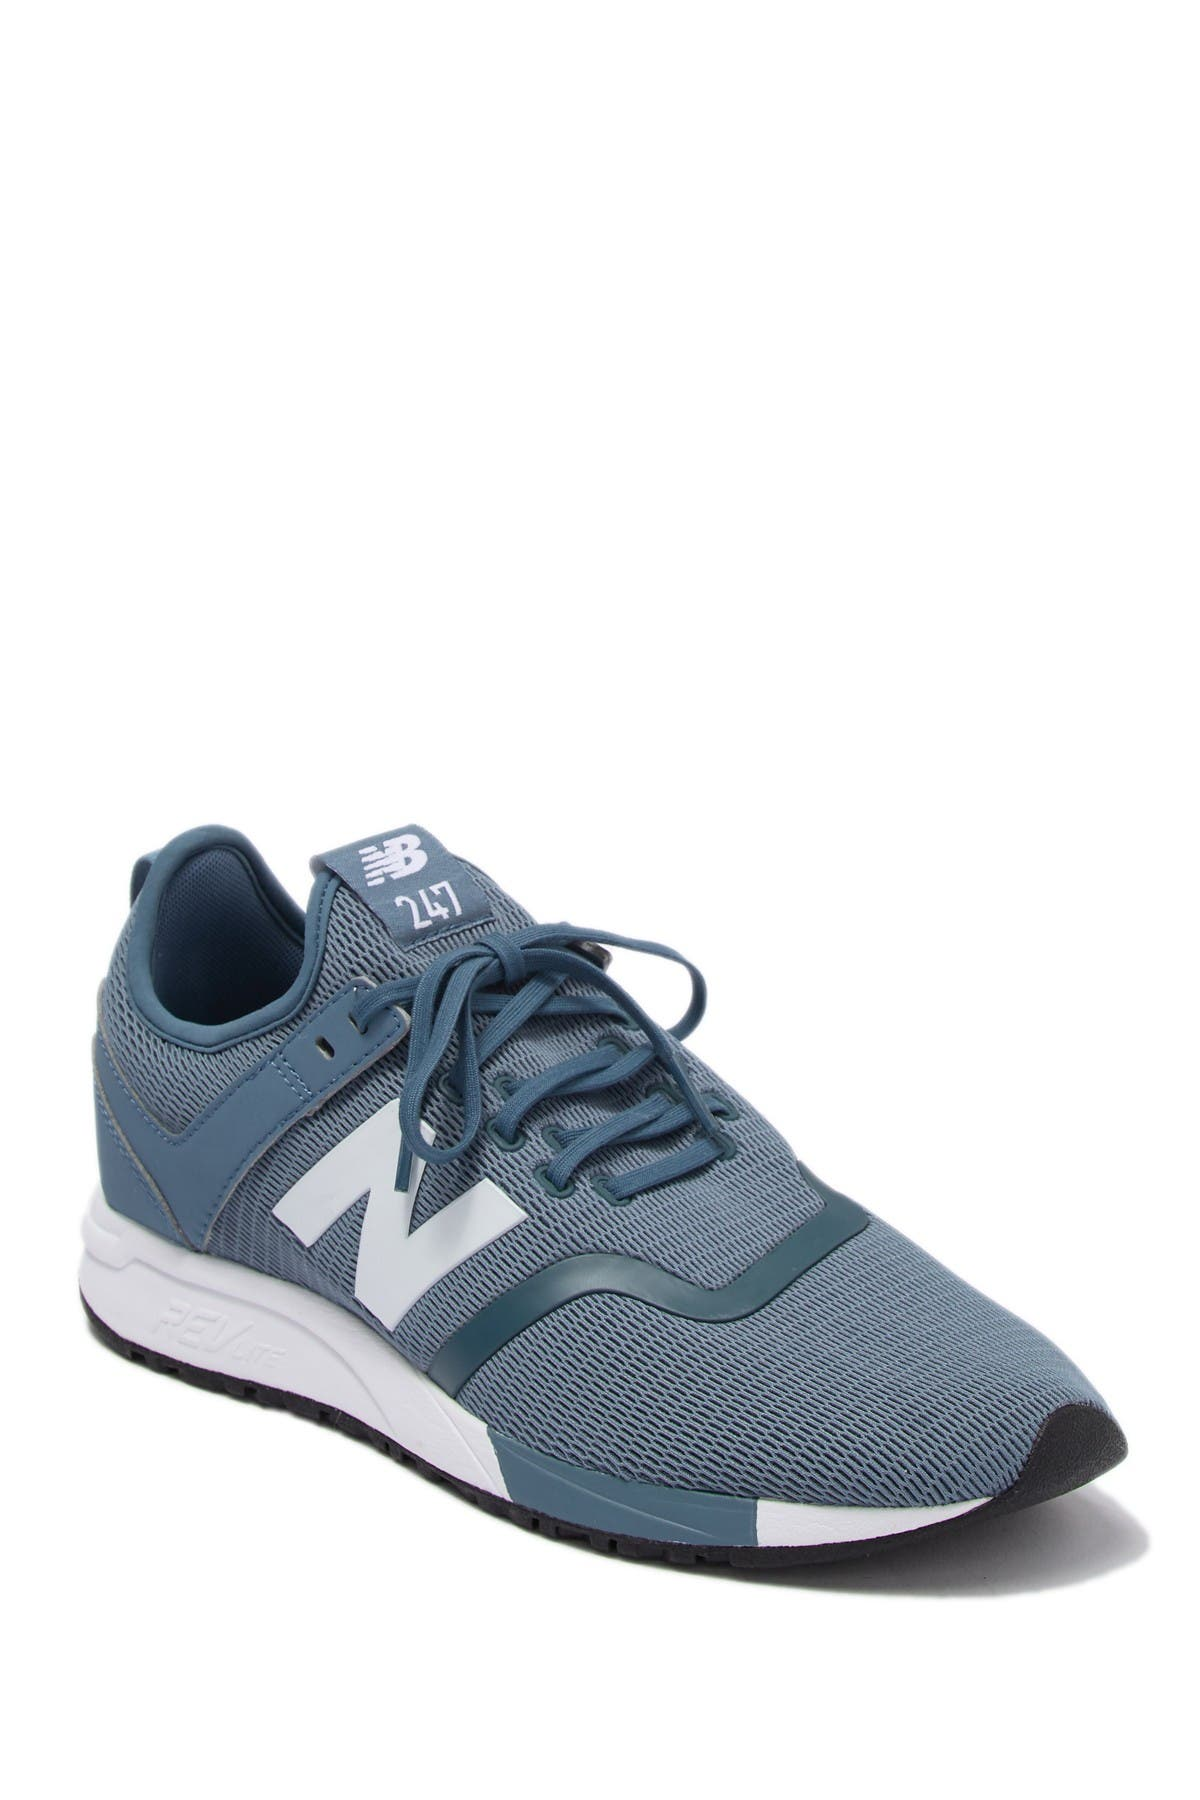 Image of New Balance 247 Classic Sneaker